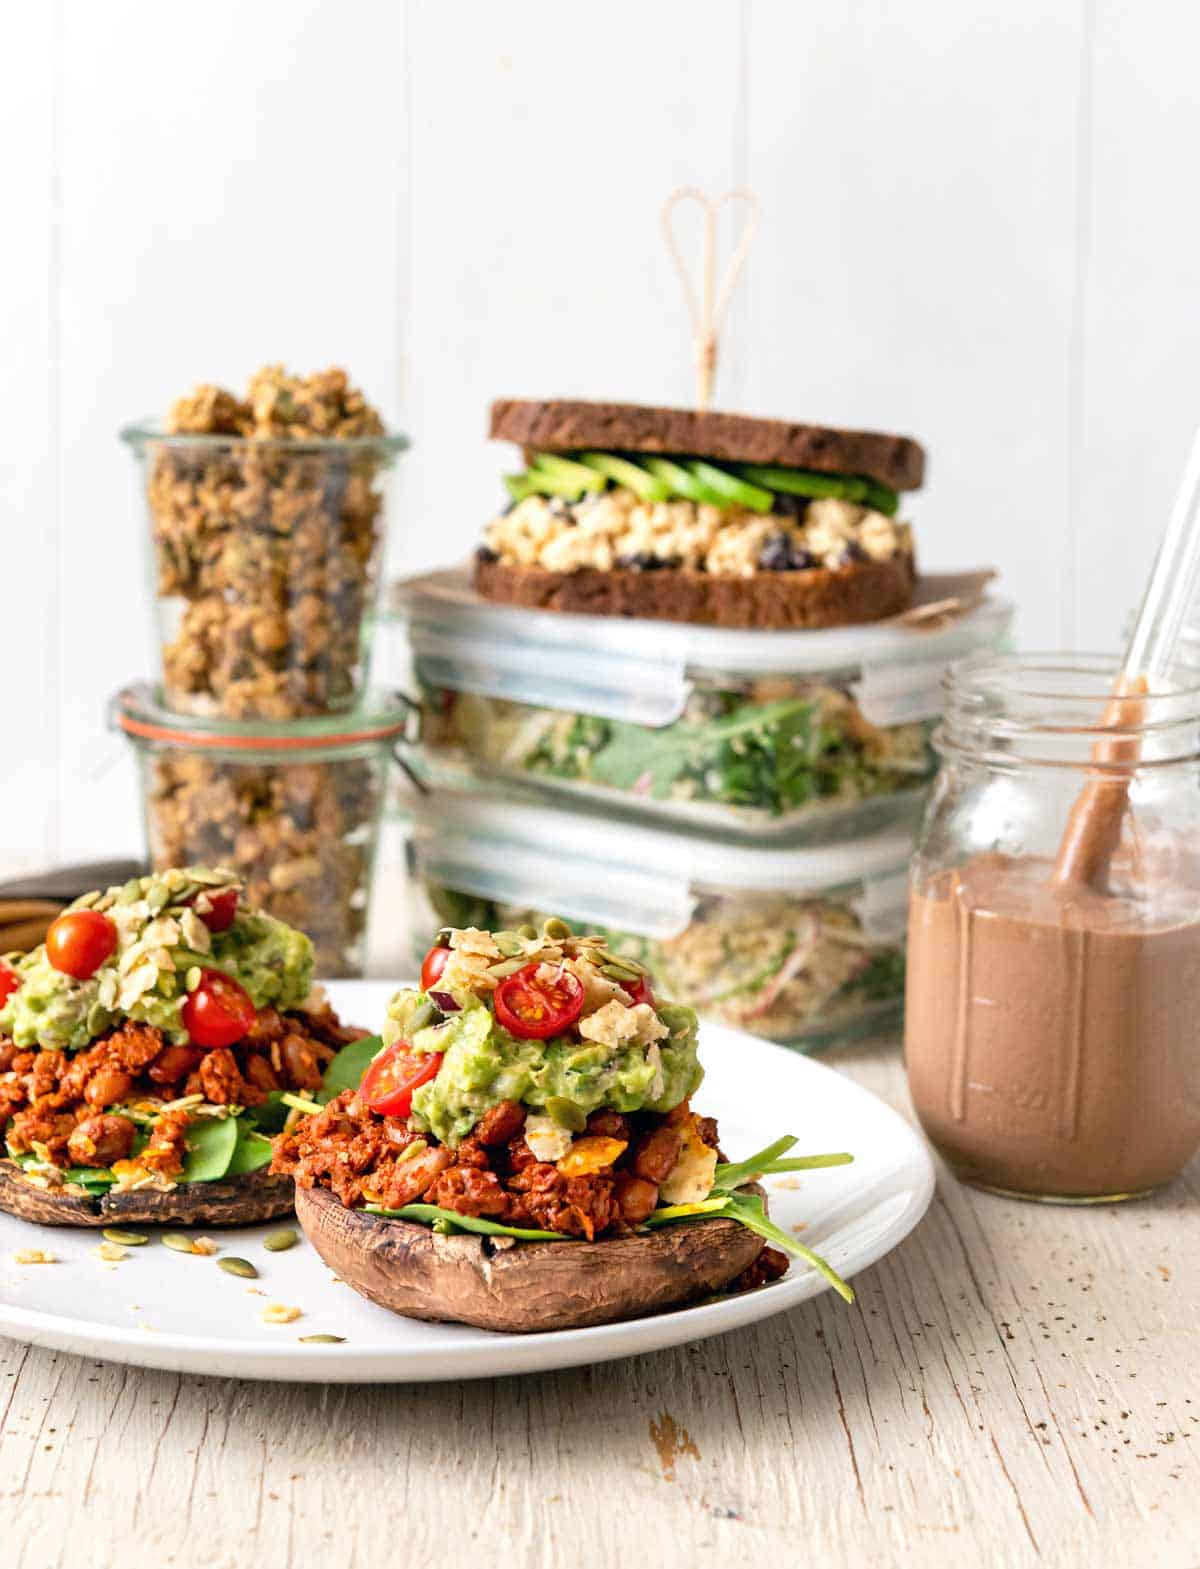 Image of multiple dishes for a High-Protein Vegan Meal Prep for two menu, with stuffed mushrooms in the foreground